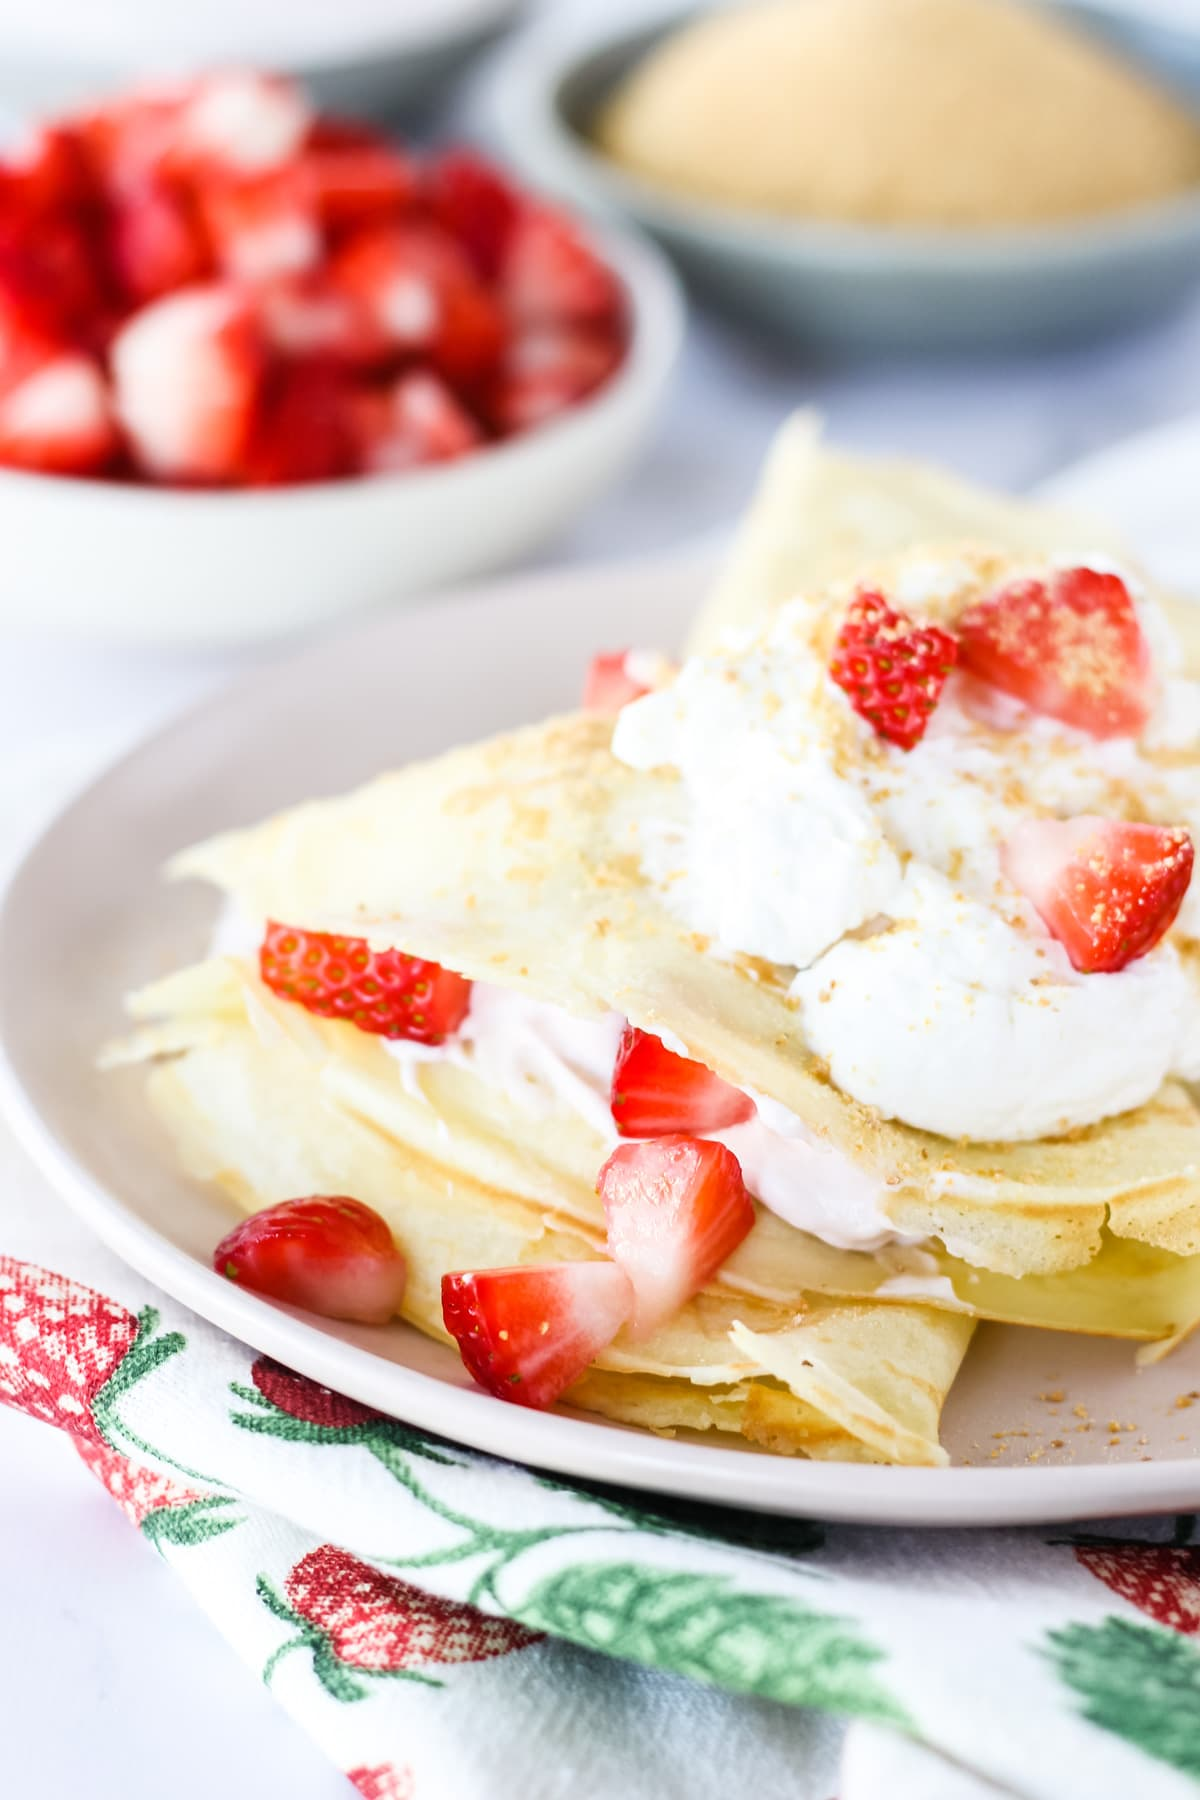 a close up side view of a plate of Strawberry Cheesecake Crepes garnished with whipping cream, chopped strawberries and graham cracker crumbs. in the background are small bowls of chopped strawberries, graham cracker crumbs, whipping cream and a strawberry linen napkin